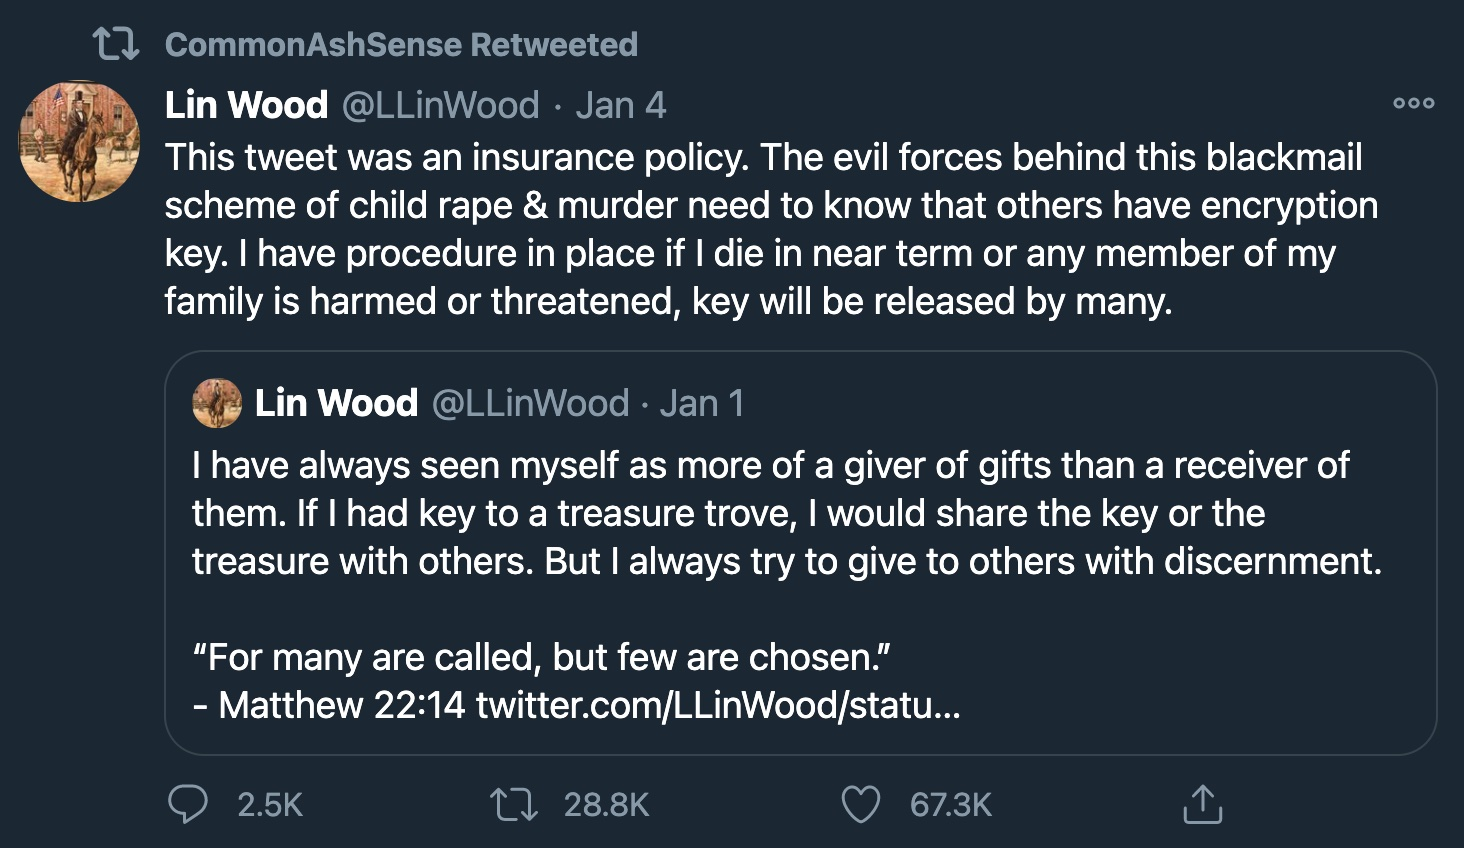 Ashli Babbitt Retweeted Lin Wood the Day She Died | Law&Crime